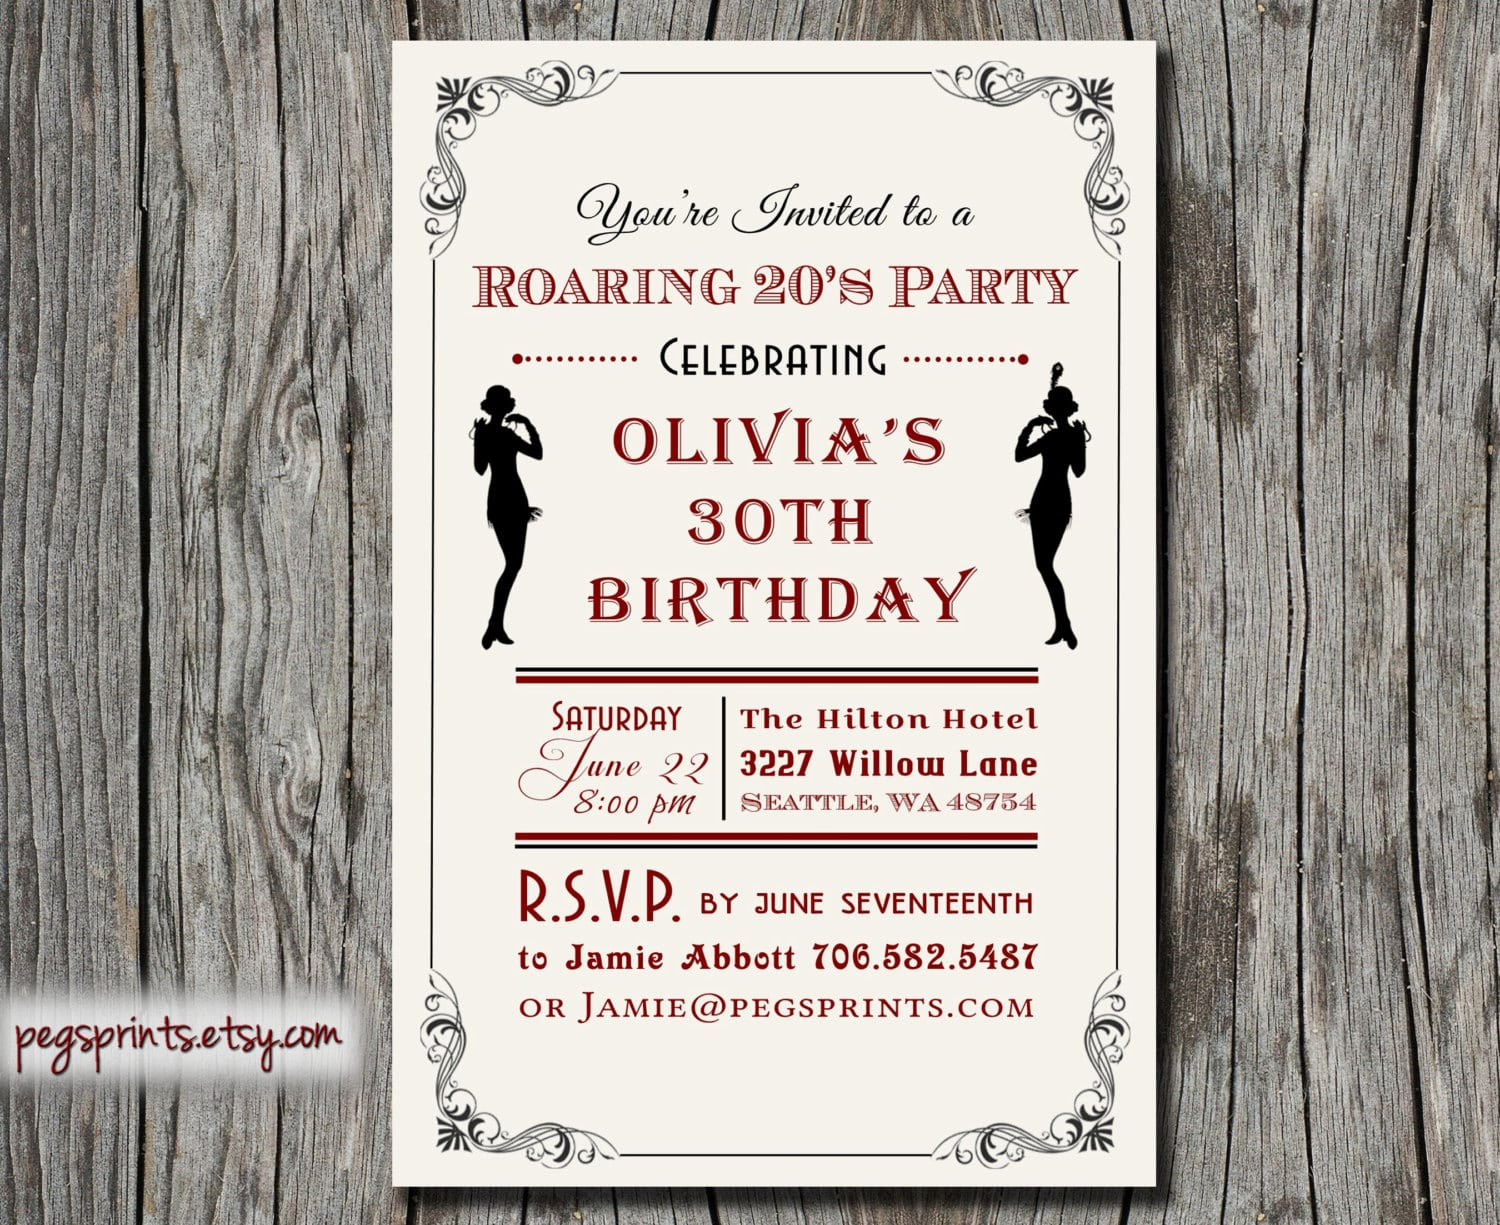 Invitations - Page 207 of 308 - Mickey Mouse Invitations Templates